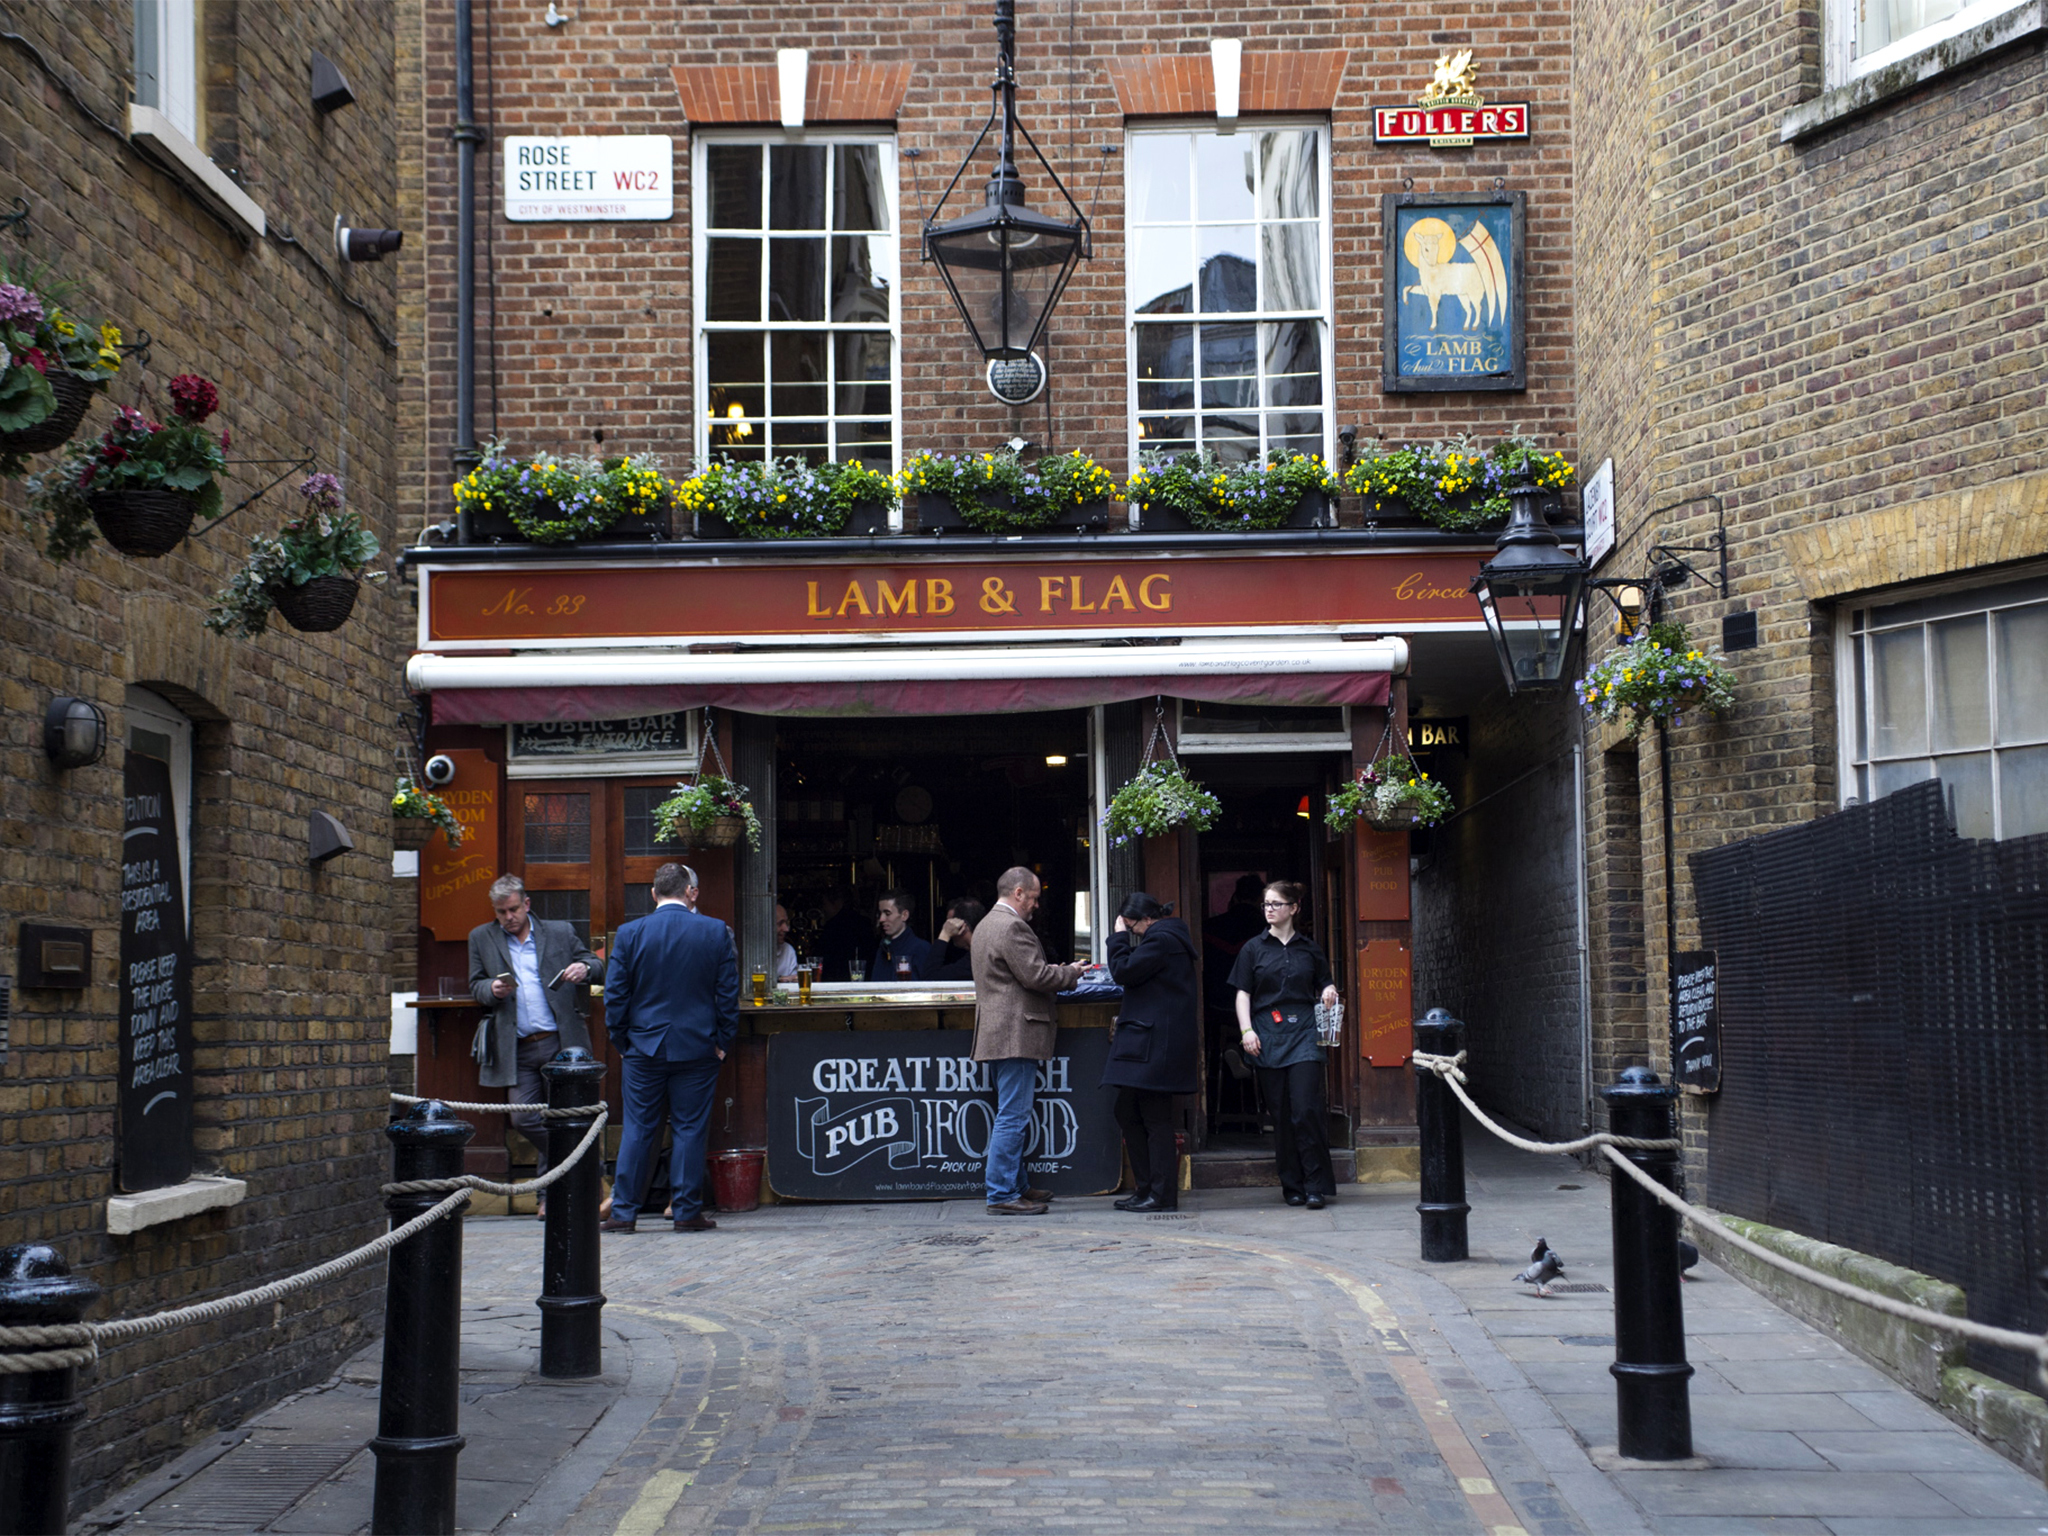 The 100 best bars and pubs in London - The Lamb & Flag, Covent Garden